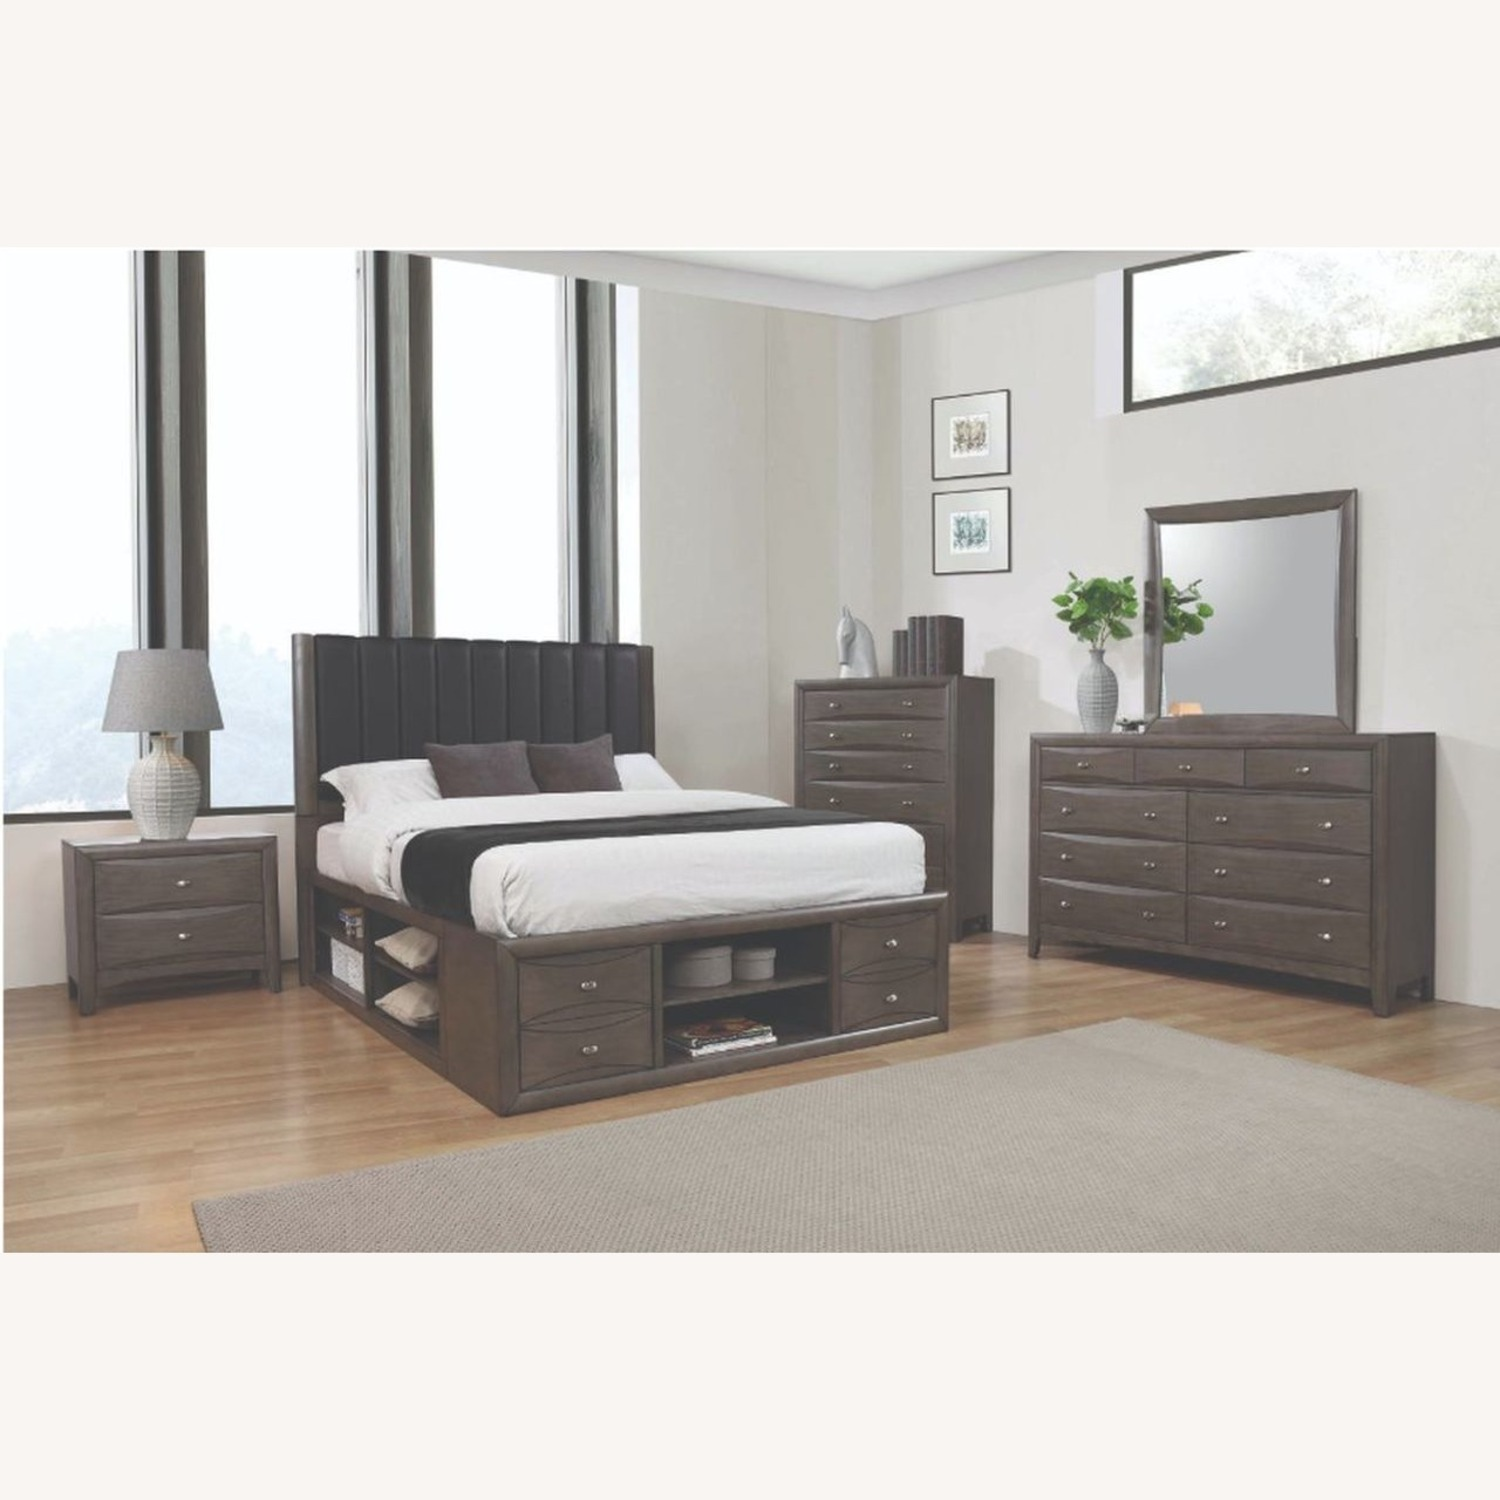 Queen Bed In A Coco Grey Finish - image-2